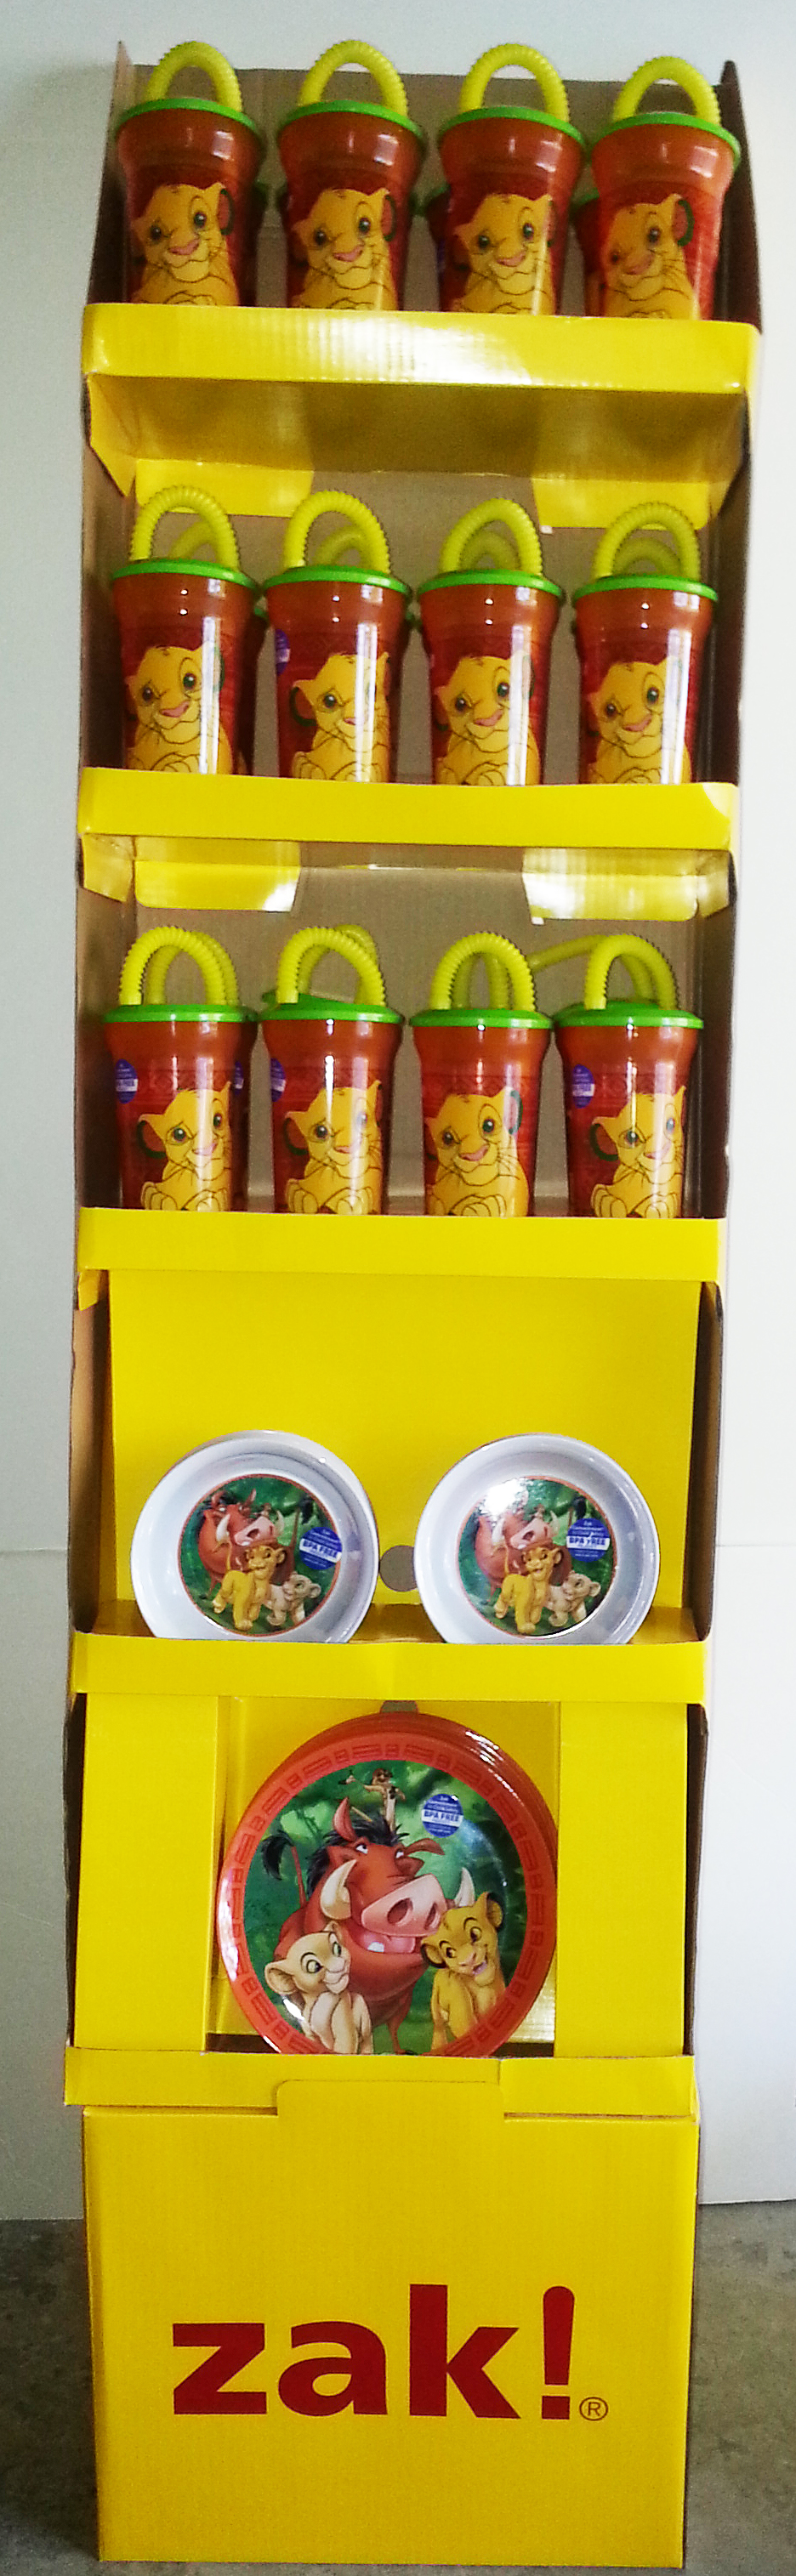 Lion King cup, bowl, plate FLoor Standing Display 60 Count